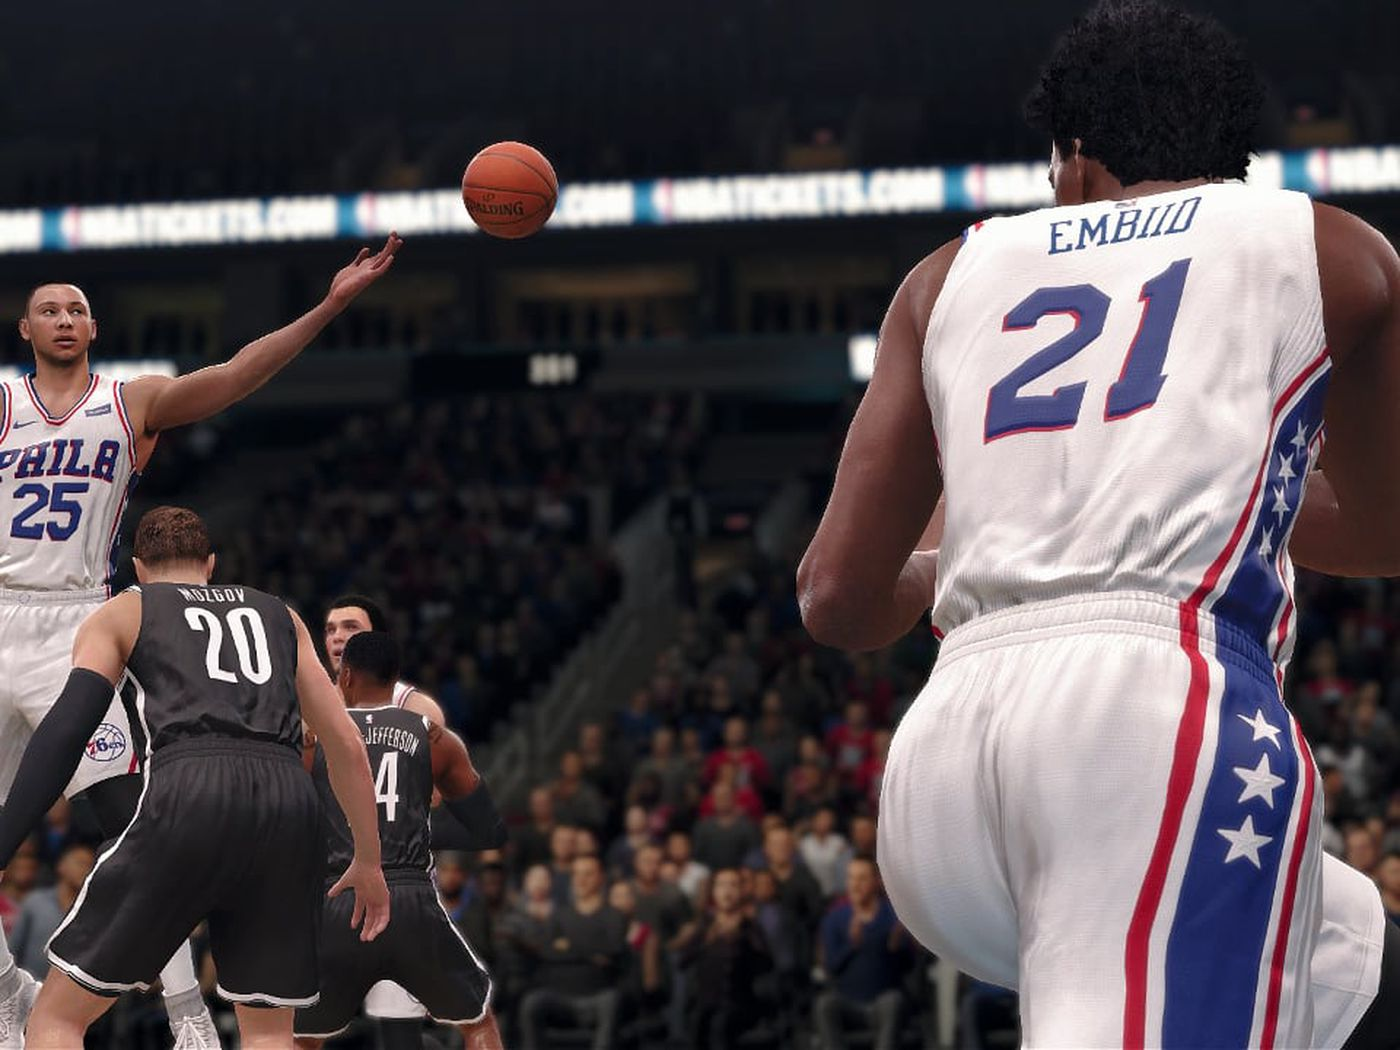 Nba Live 20 Canceled As Ea Sports Looks To Next Gen Consoles